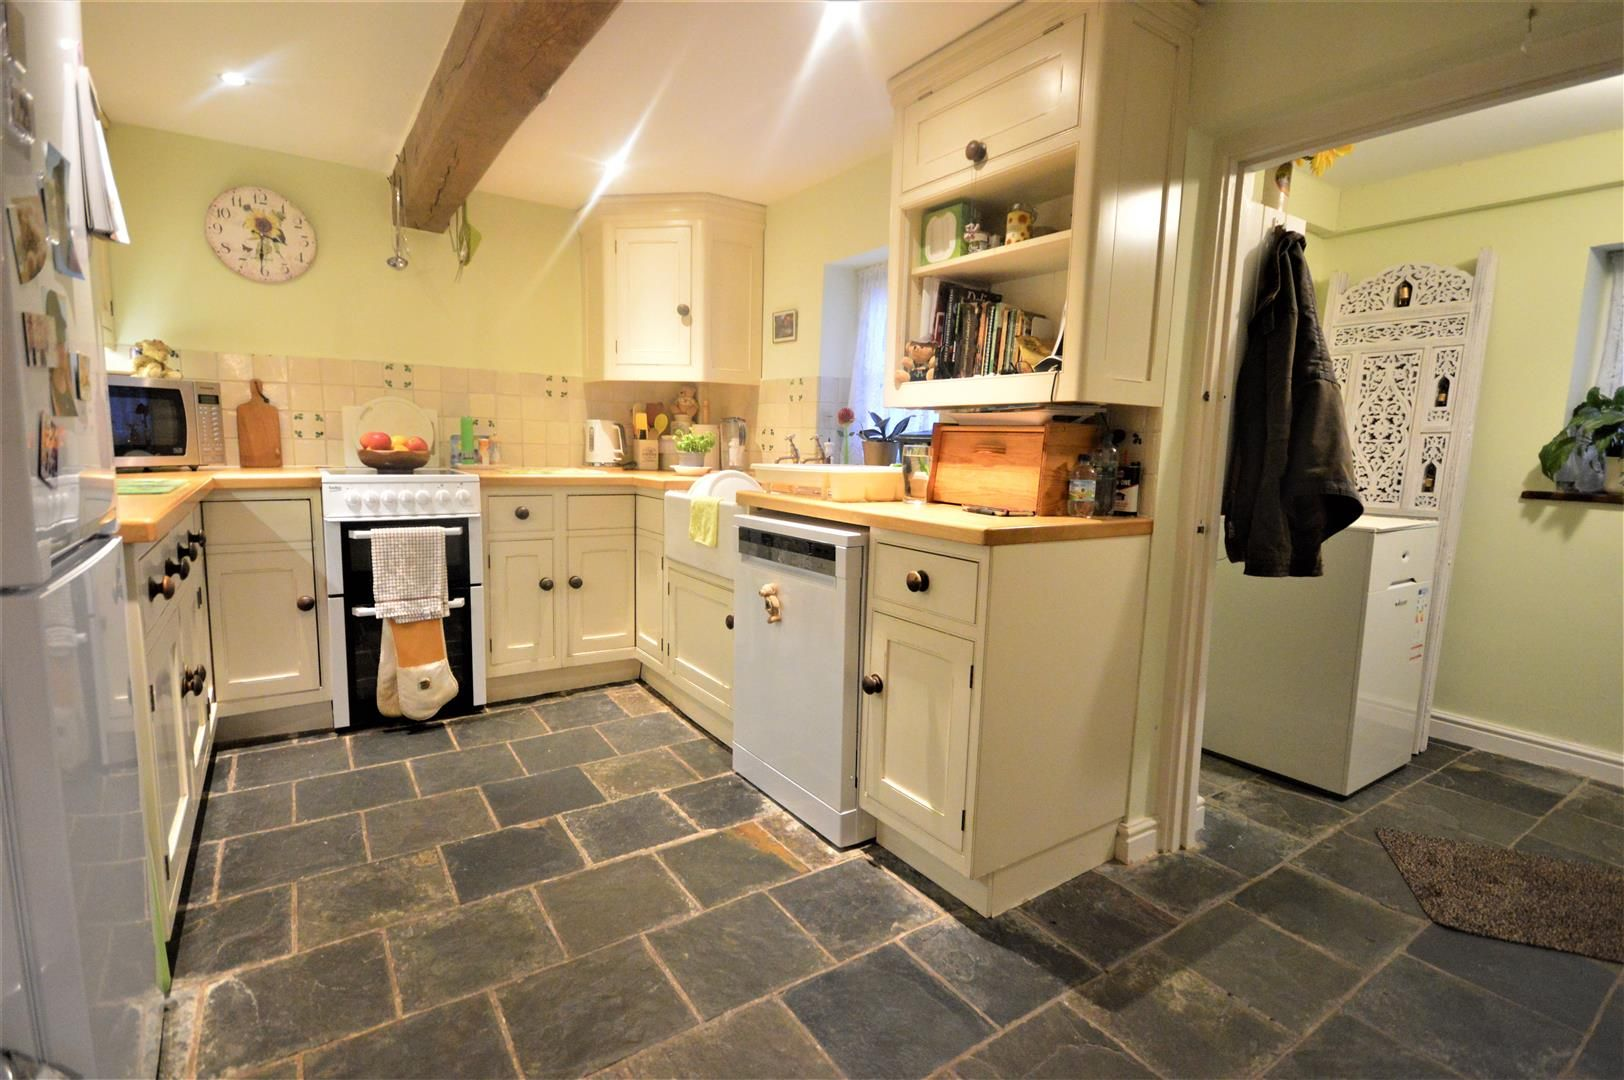 4 bed detached for sale in Dilwyn 4